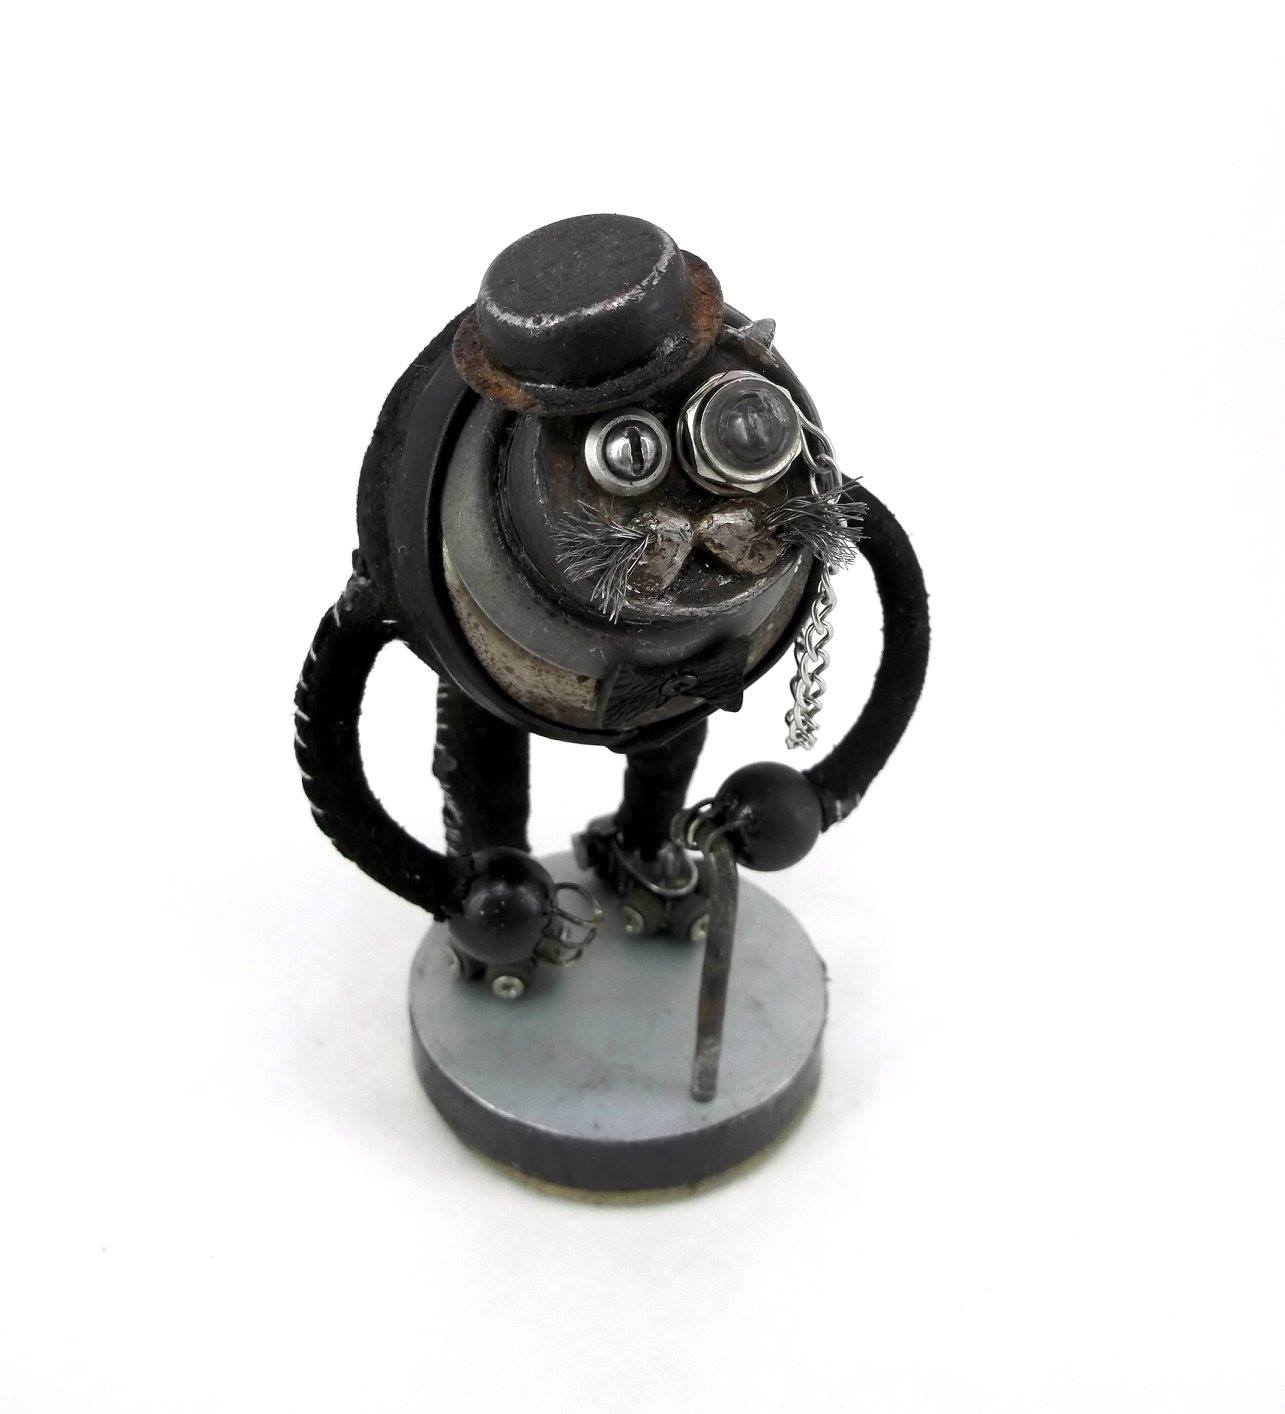 Steampunk sculptures – Igor Verniy – Old Mister Cat